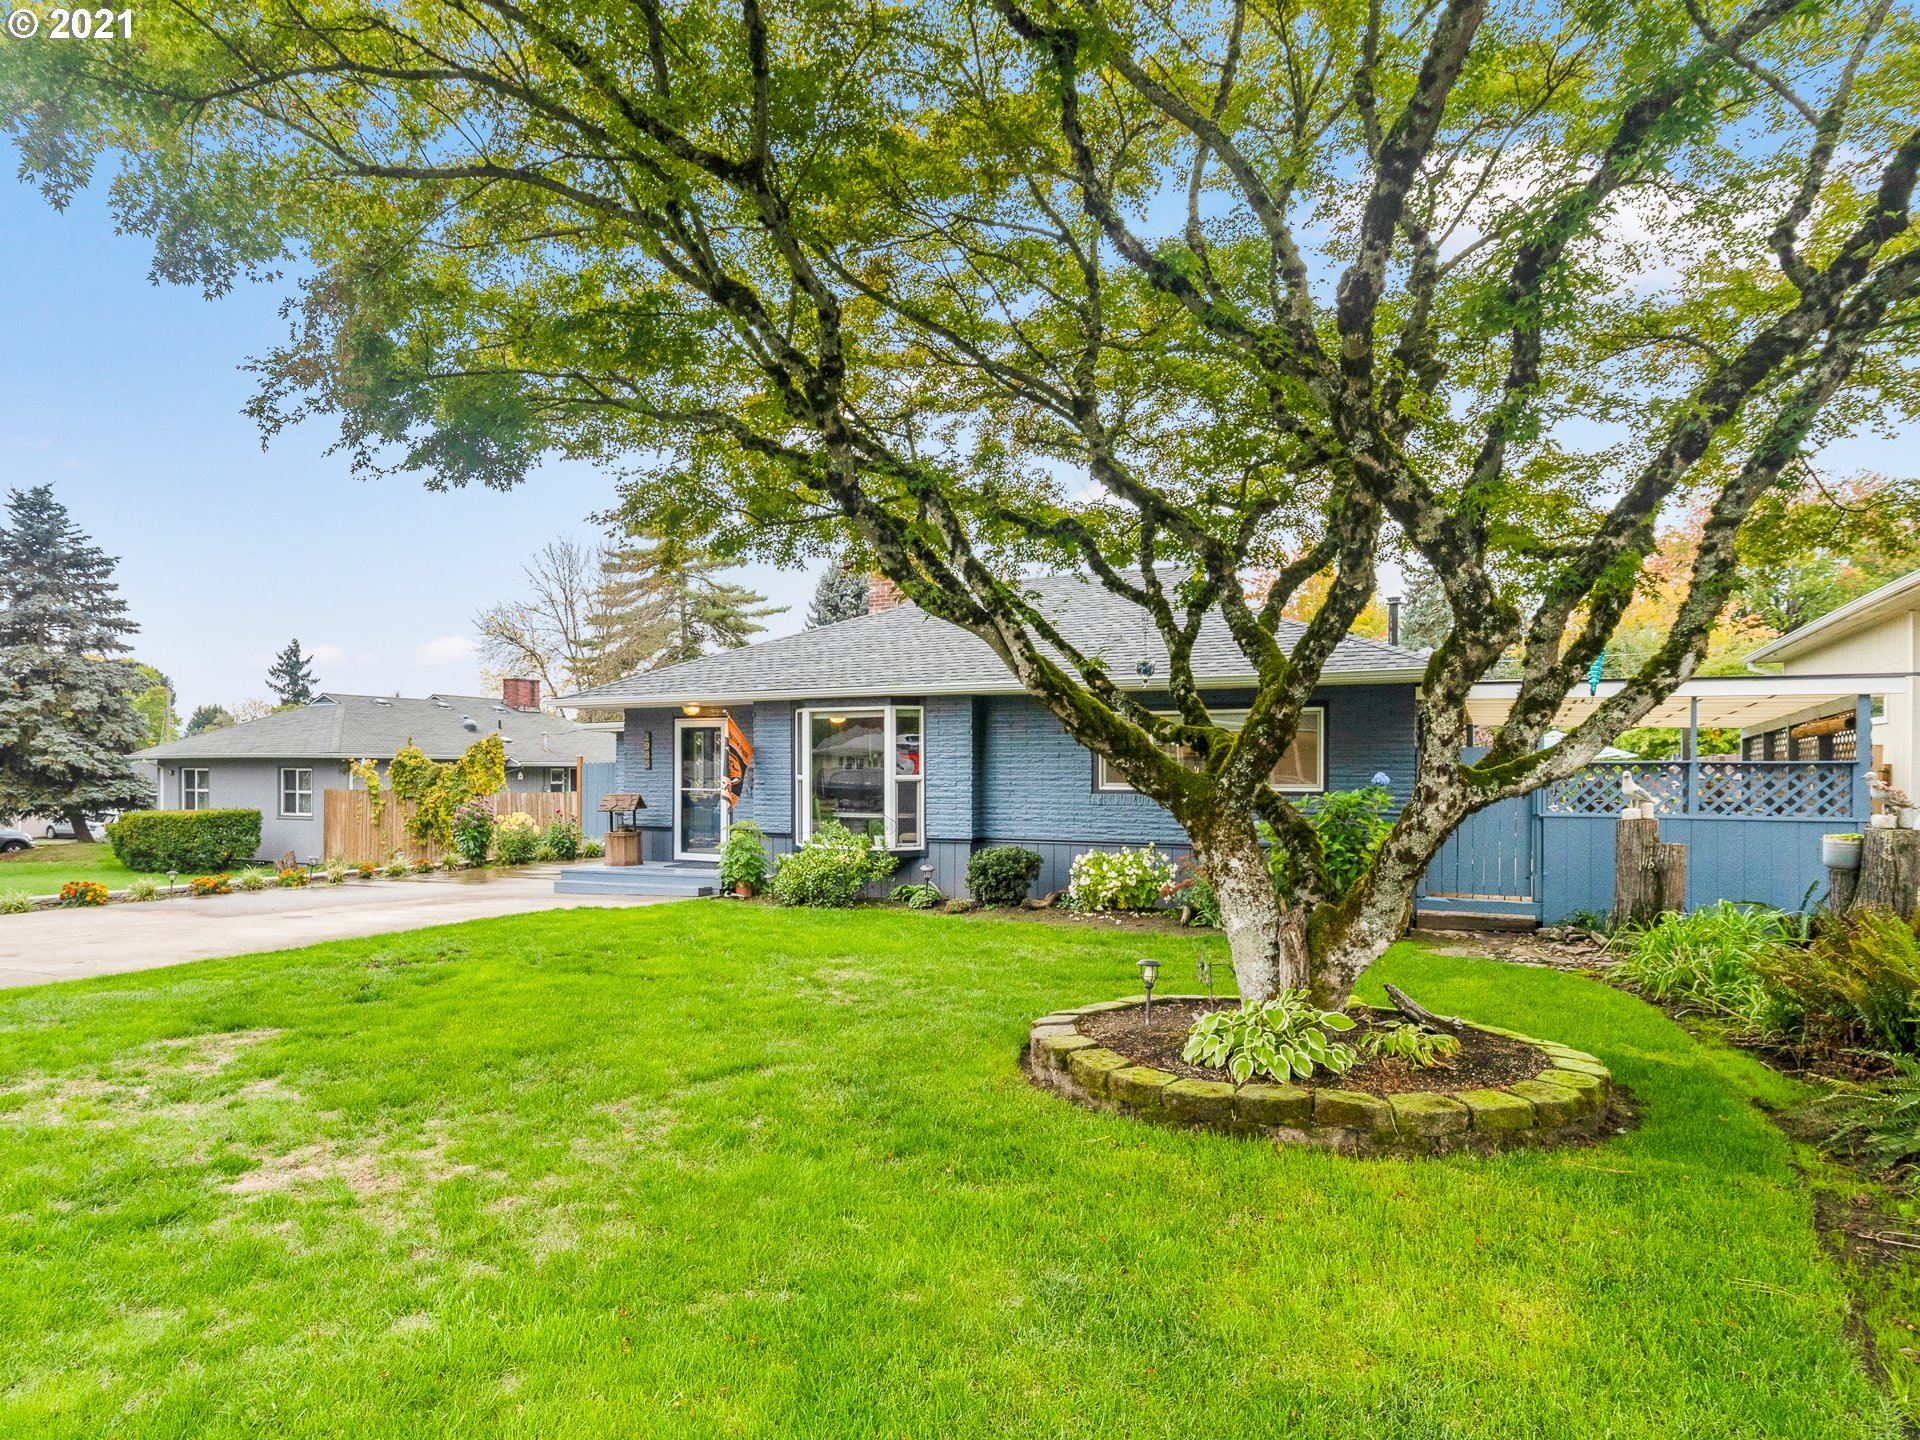 Photo of 2985 SW 120TH AVE, Beaverton, OR 97005 (MLS # 21063768)